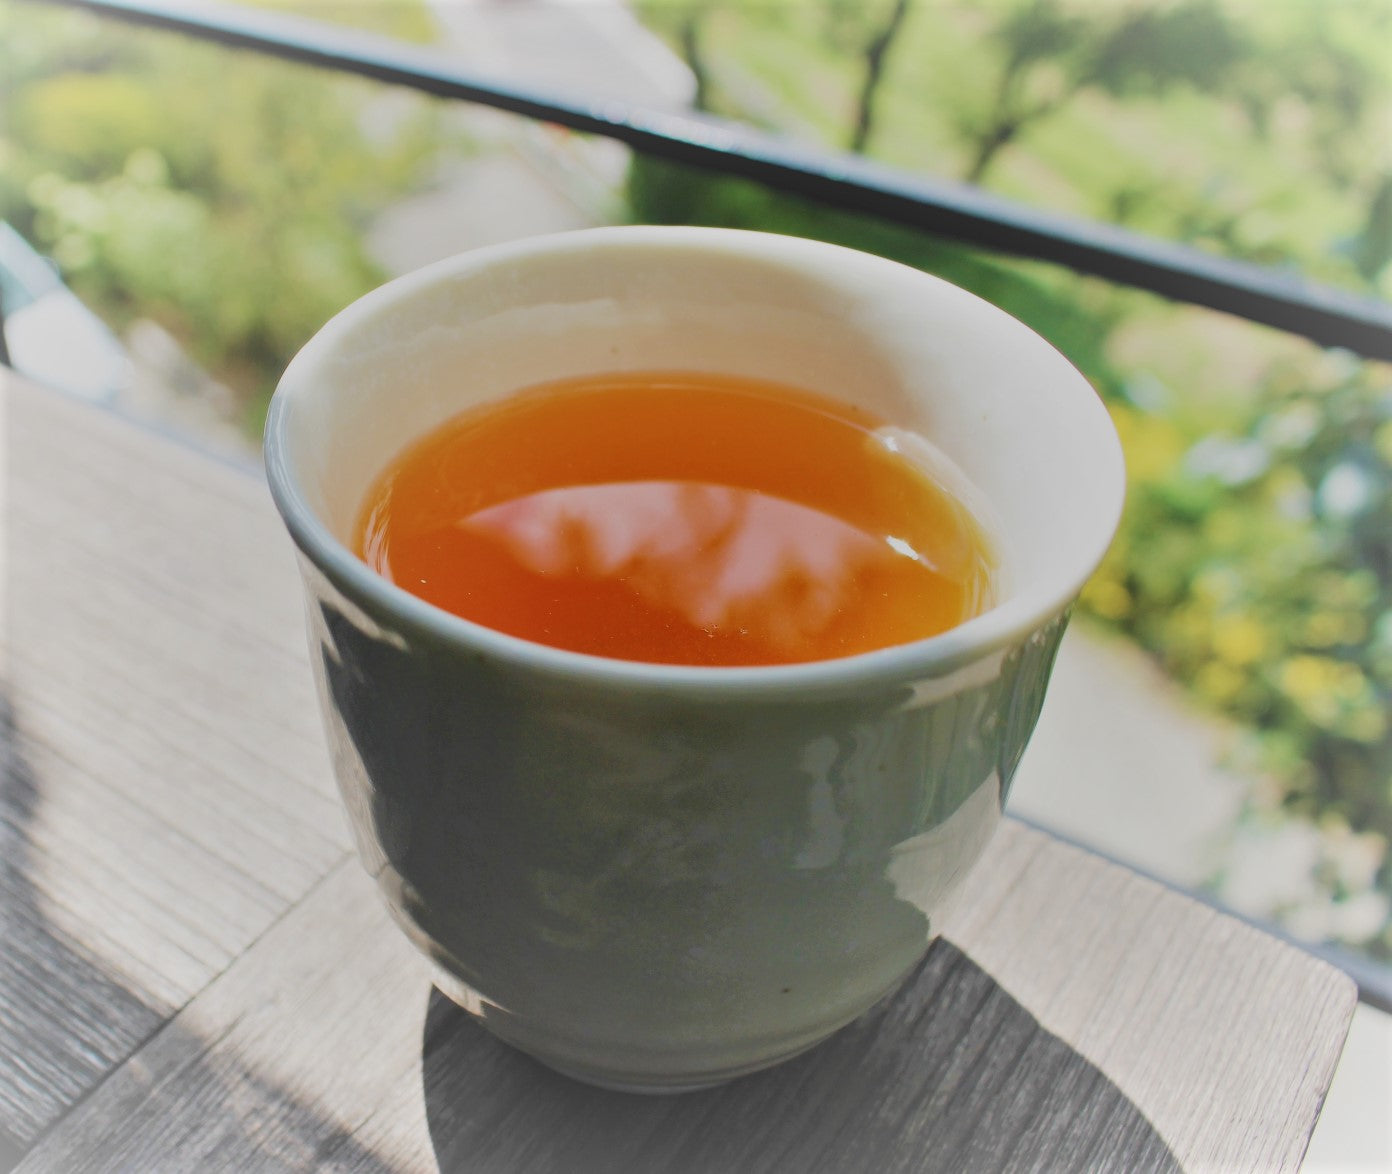 Is Hojicha effective for weight loss?